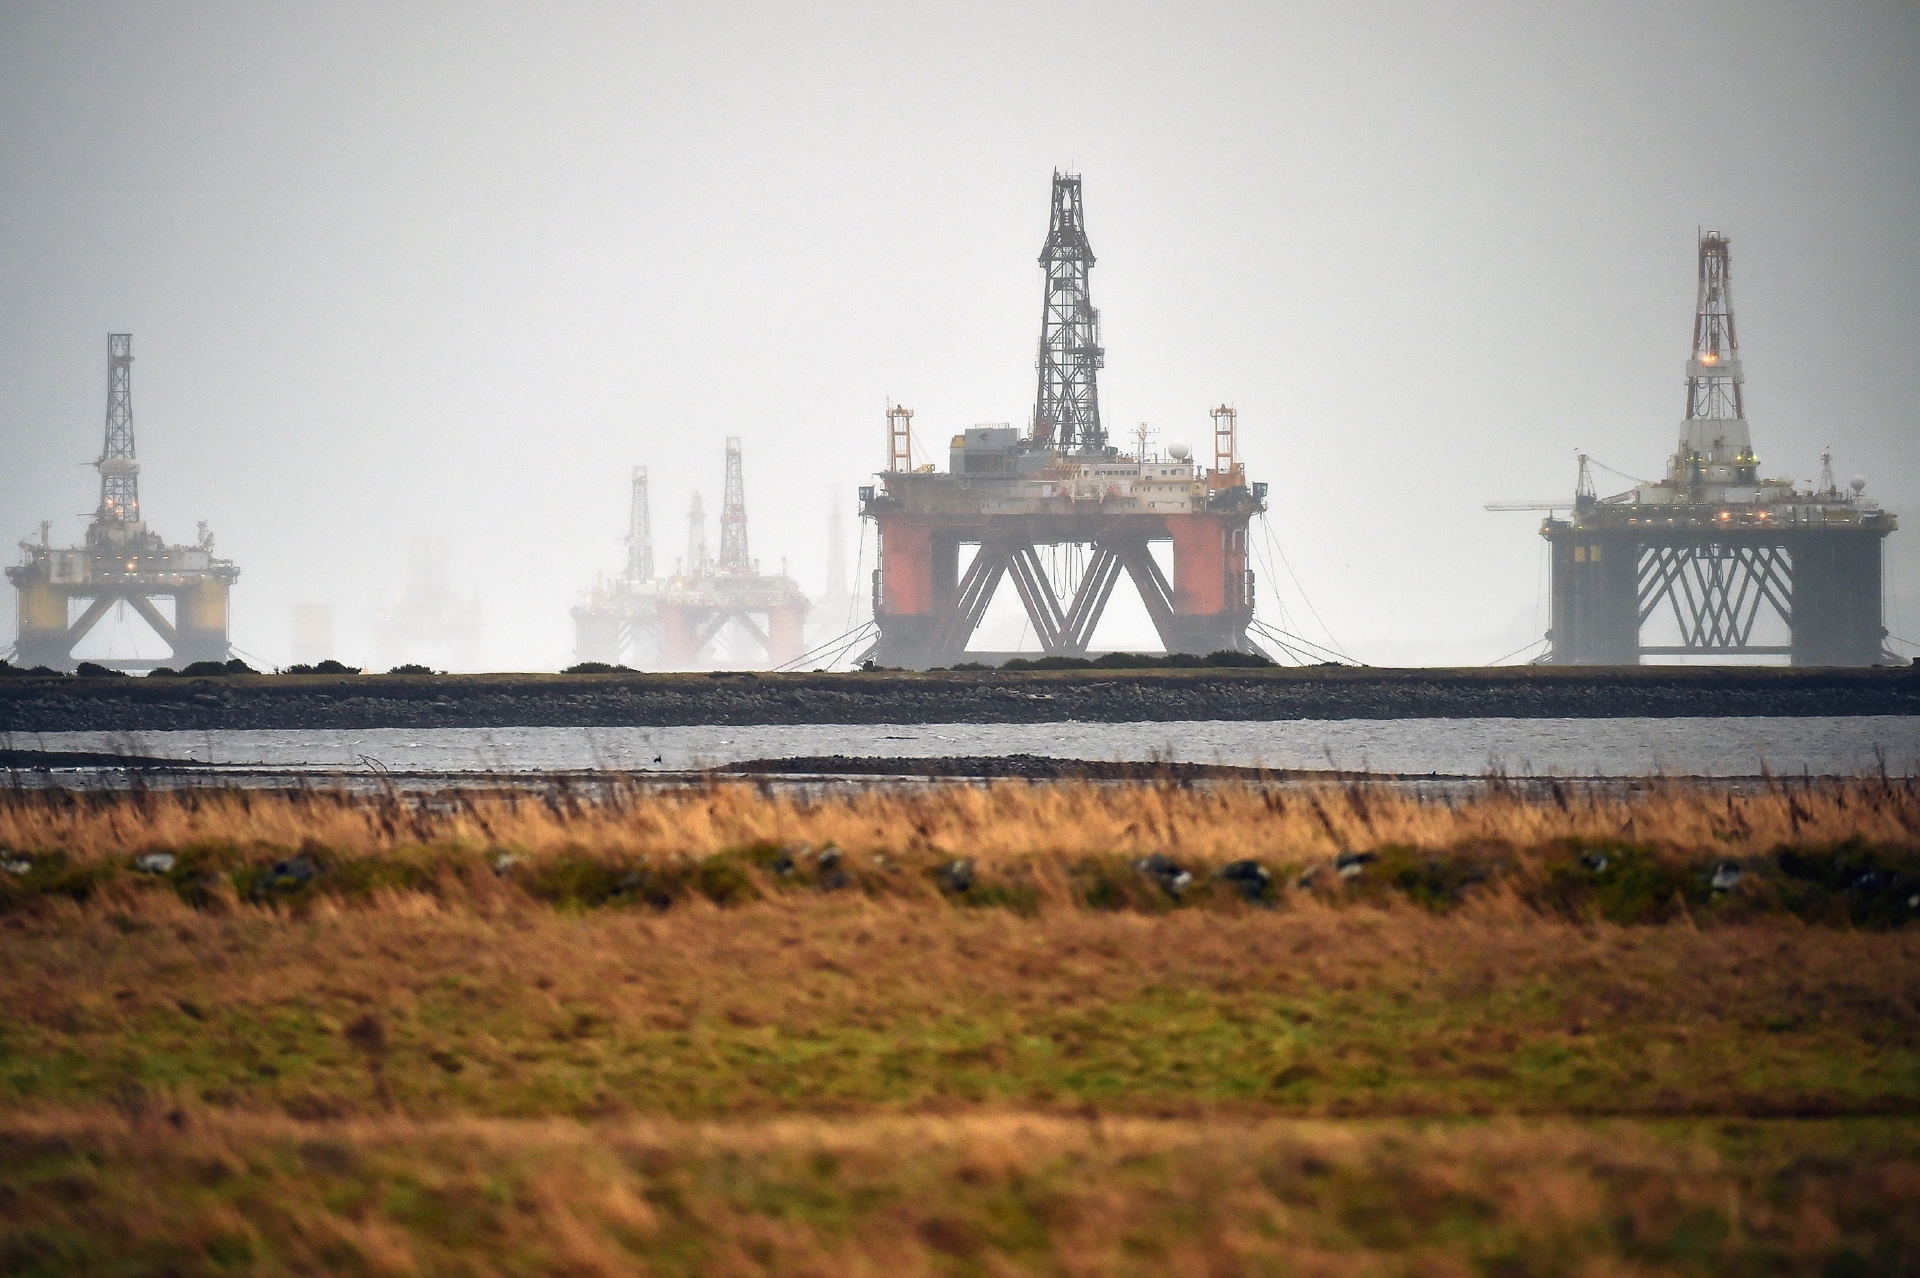 The oil price plunge has severely affected the North Sea industry.